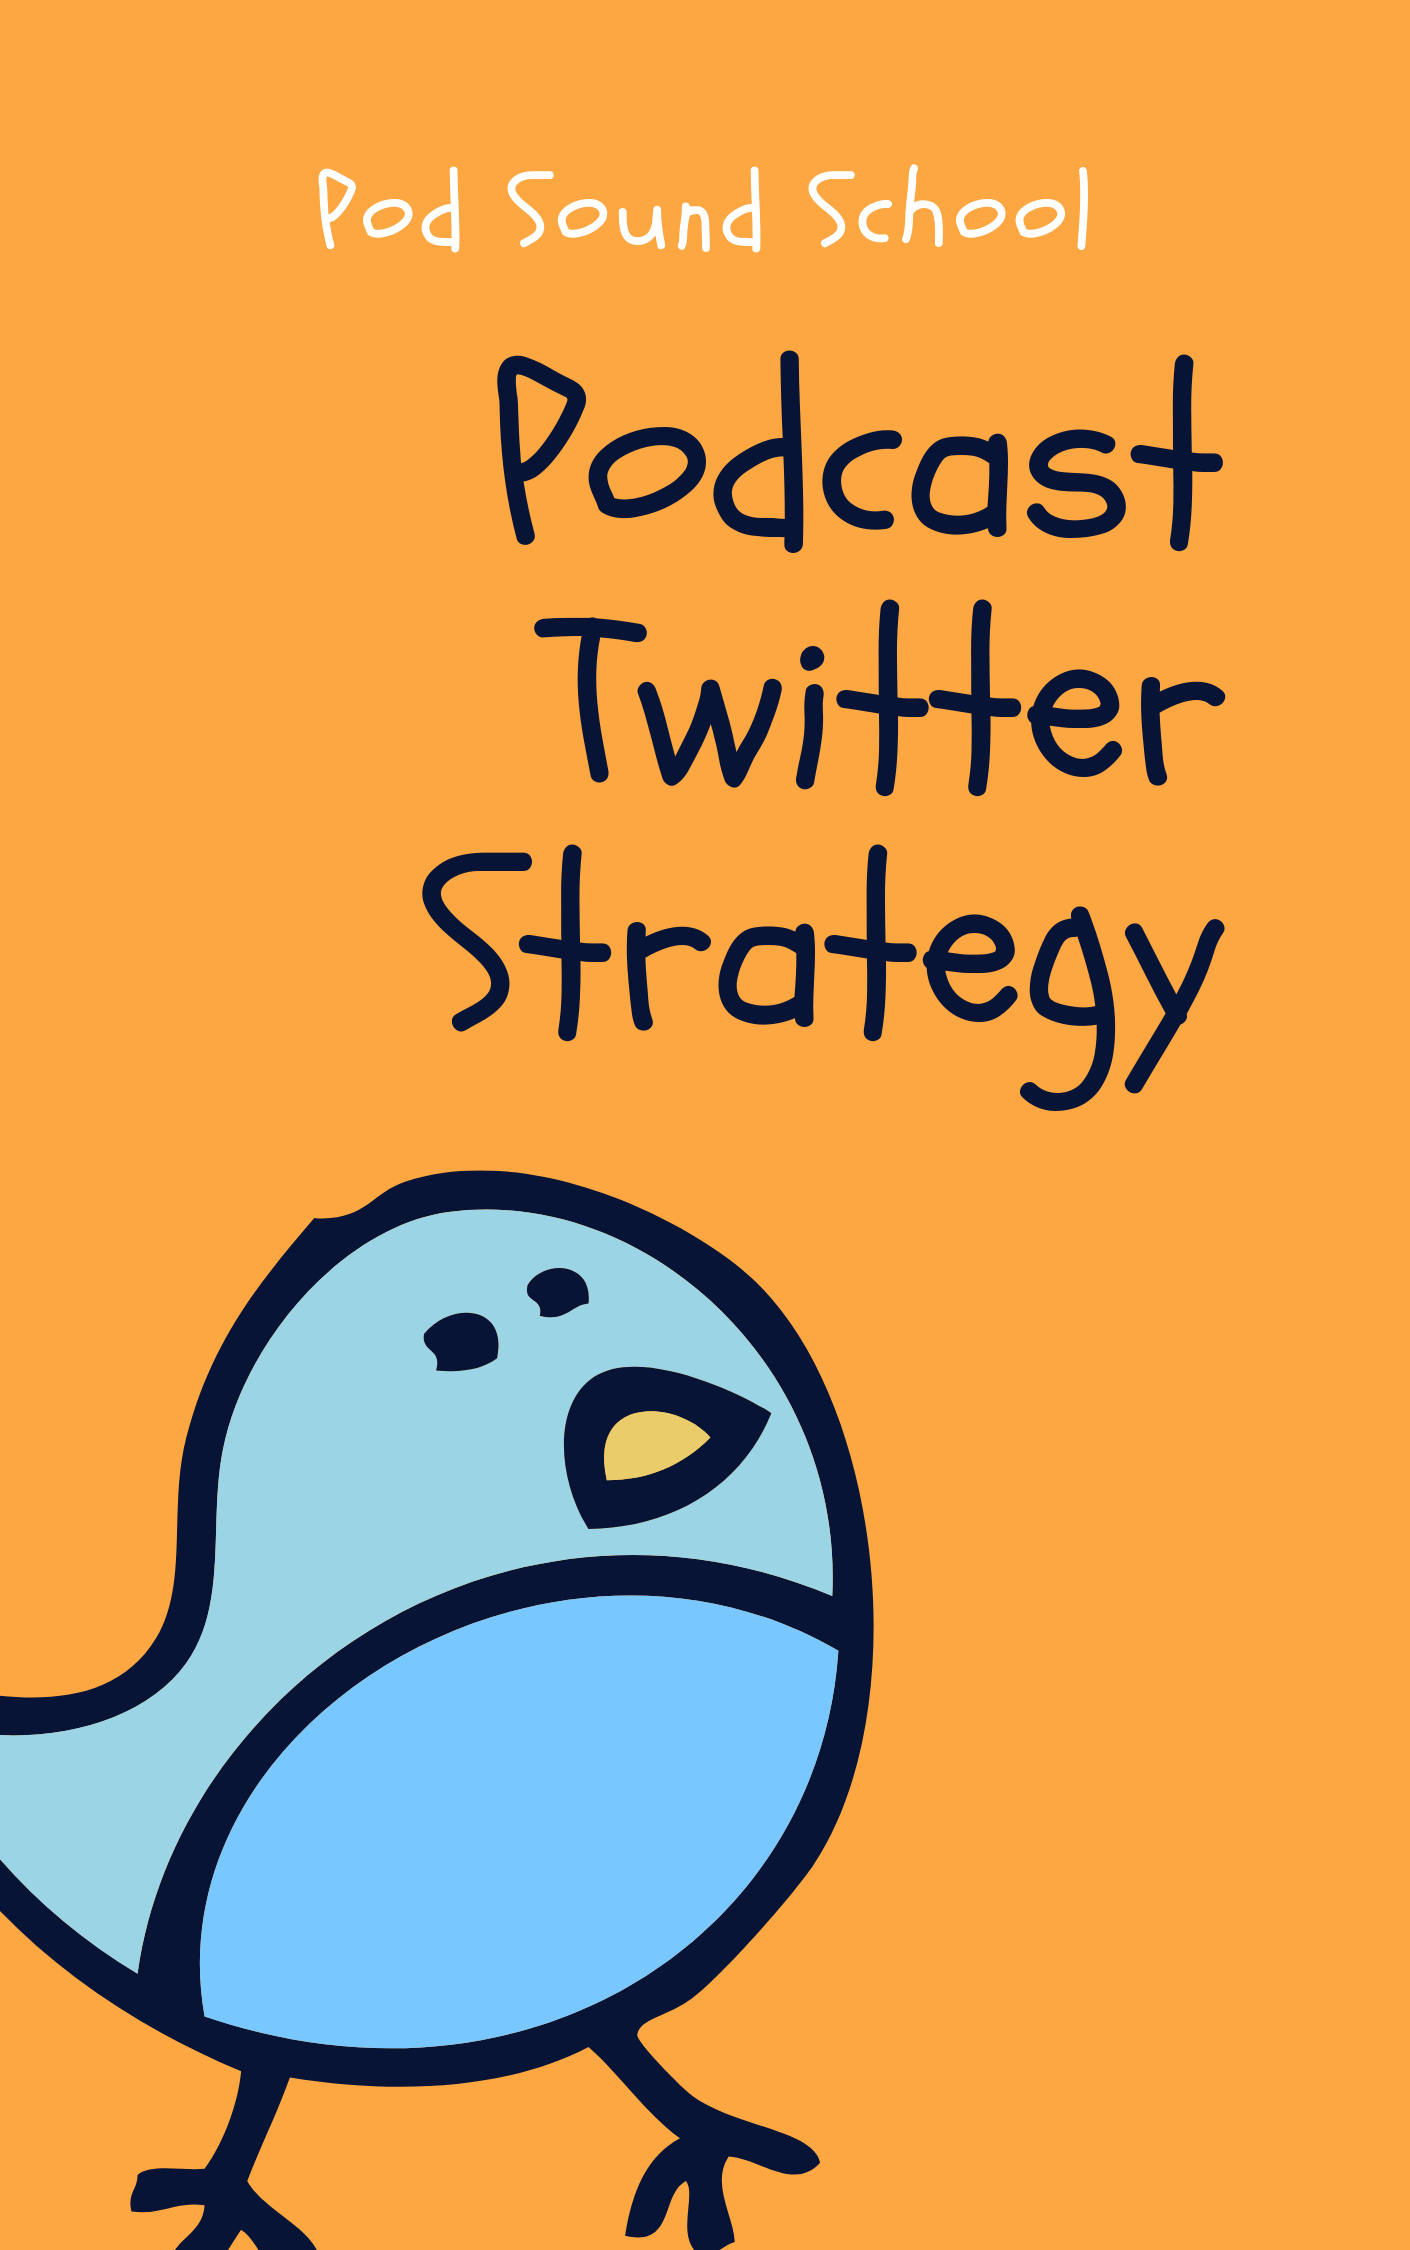 Podcast Twitter Strategy